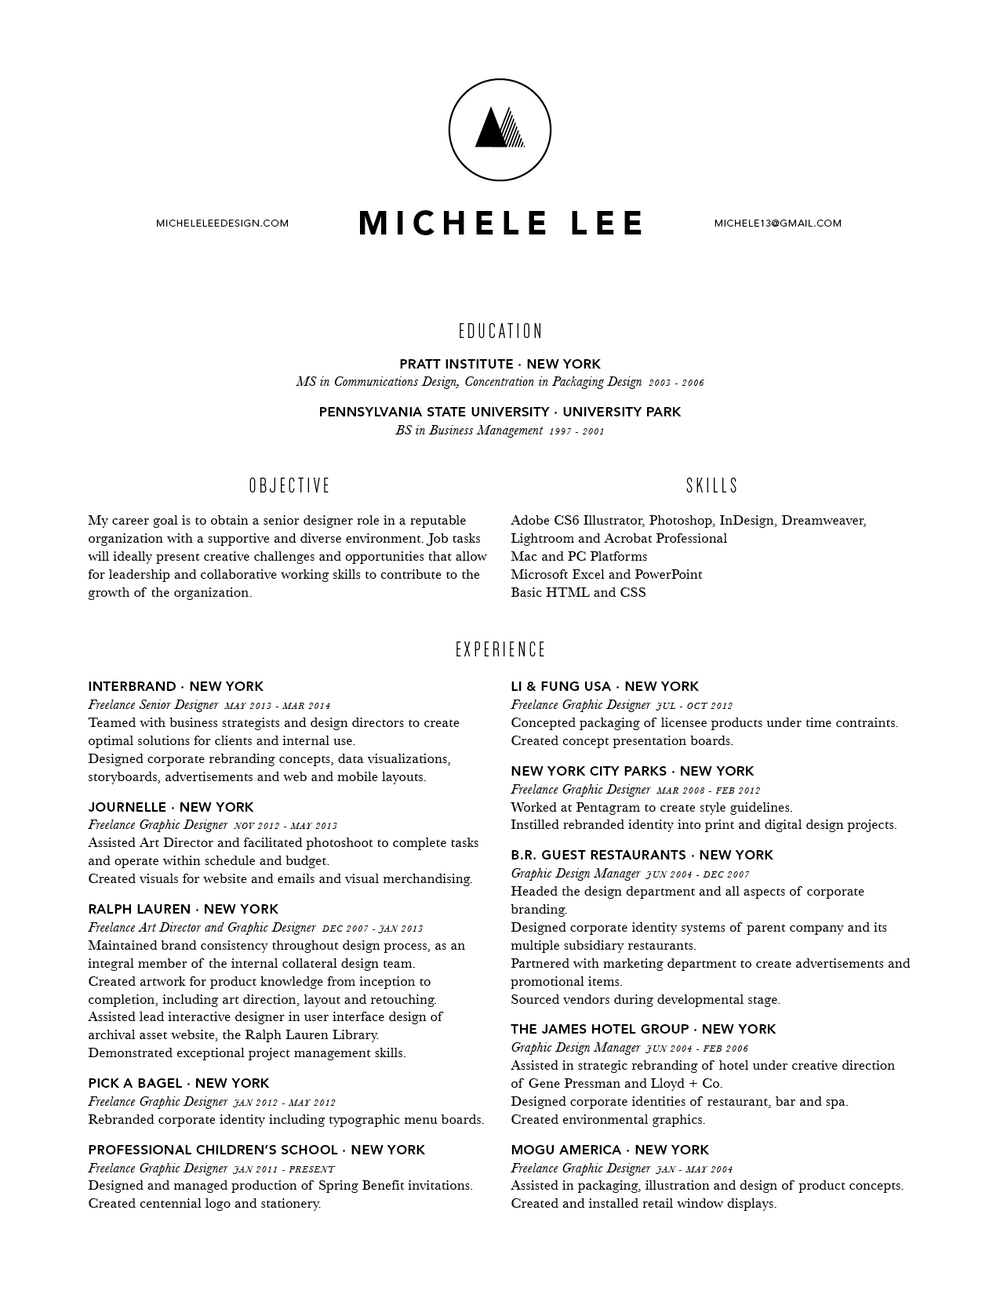 Resume — Michele Lee